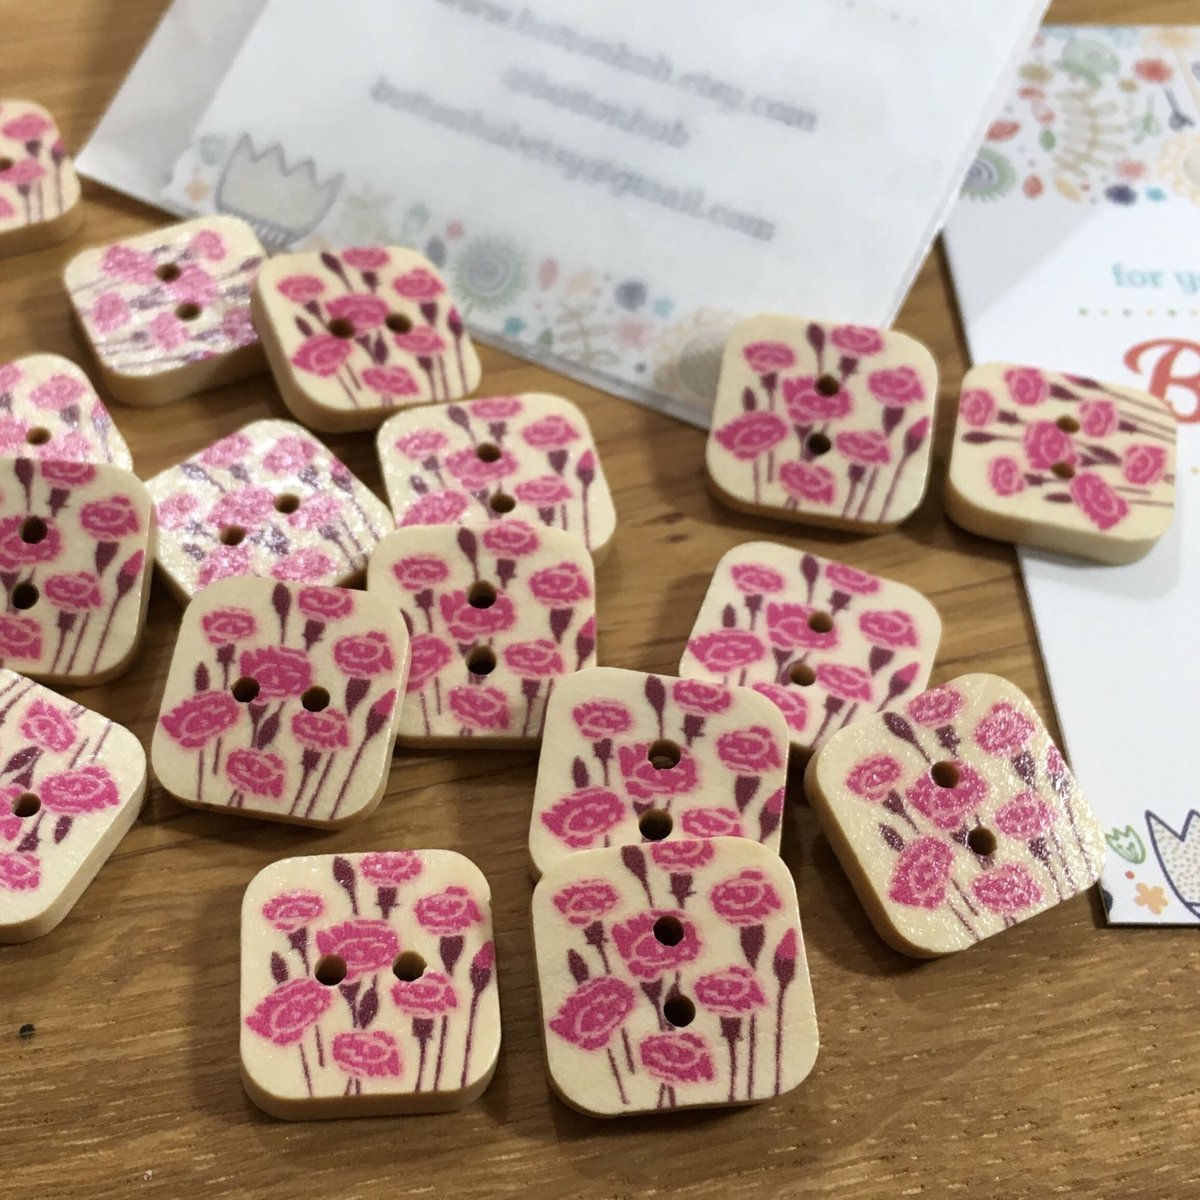 🌷Square Rose Patterned Wooden Buttons:Packs if 4 buttons #etsy #sewing #mothersday #garden #babyshower #buttons #knitting #crochet #babyknits #hairclips #etsyuk #shopsmall #tuesdaymotivation #rose #roses #floral #flowers #florist